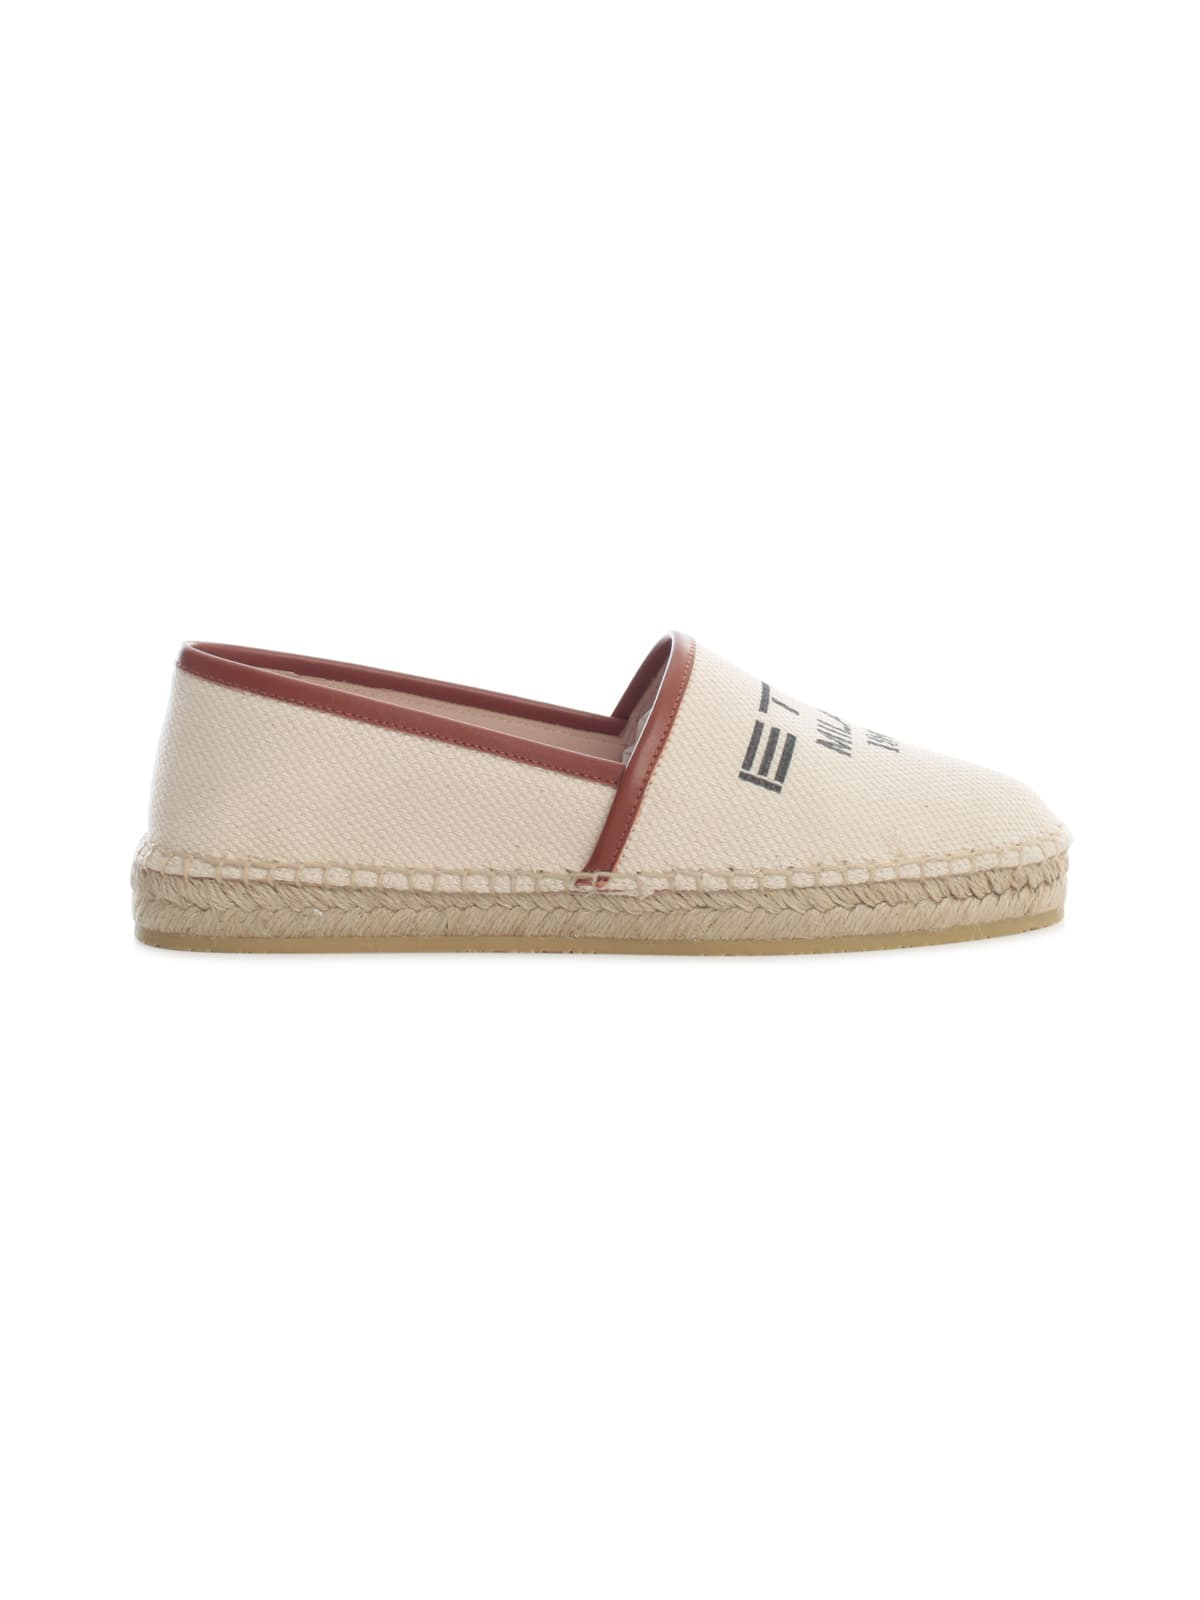 Etro Leathers ESPADRILLAS BOTTOM RUBBER AND ROPE